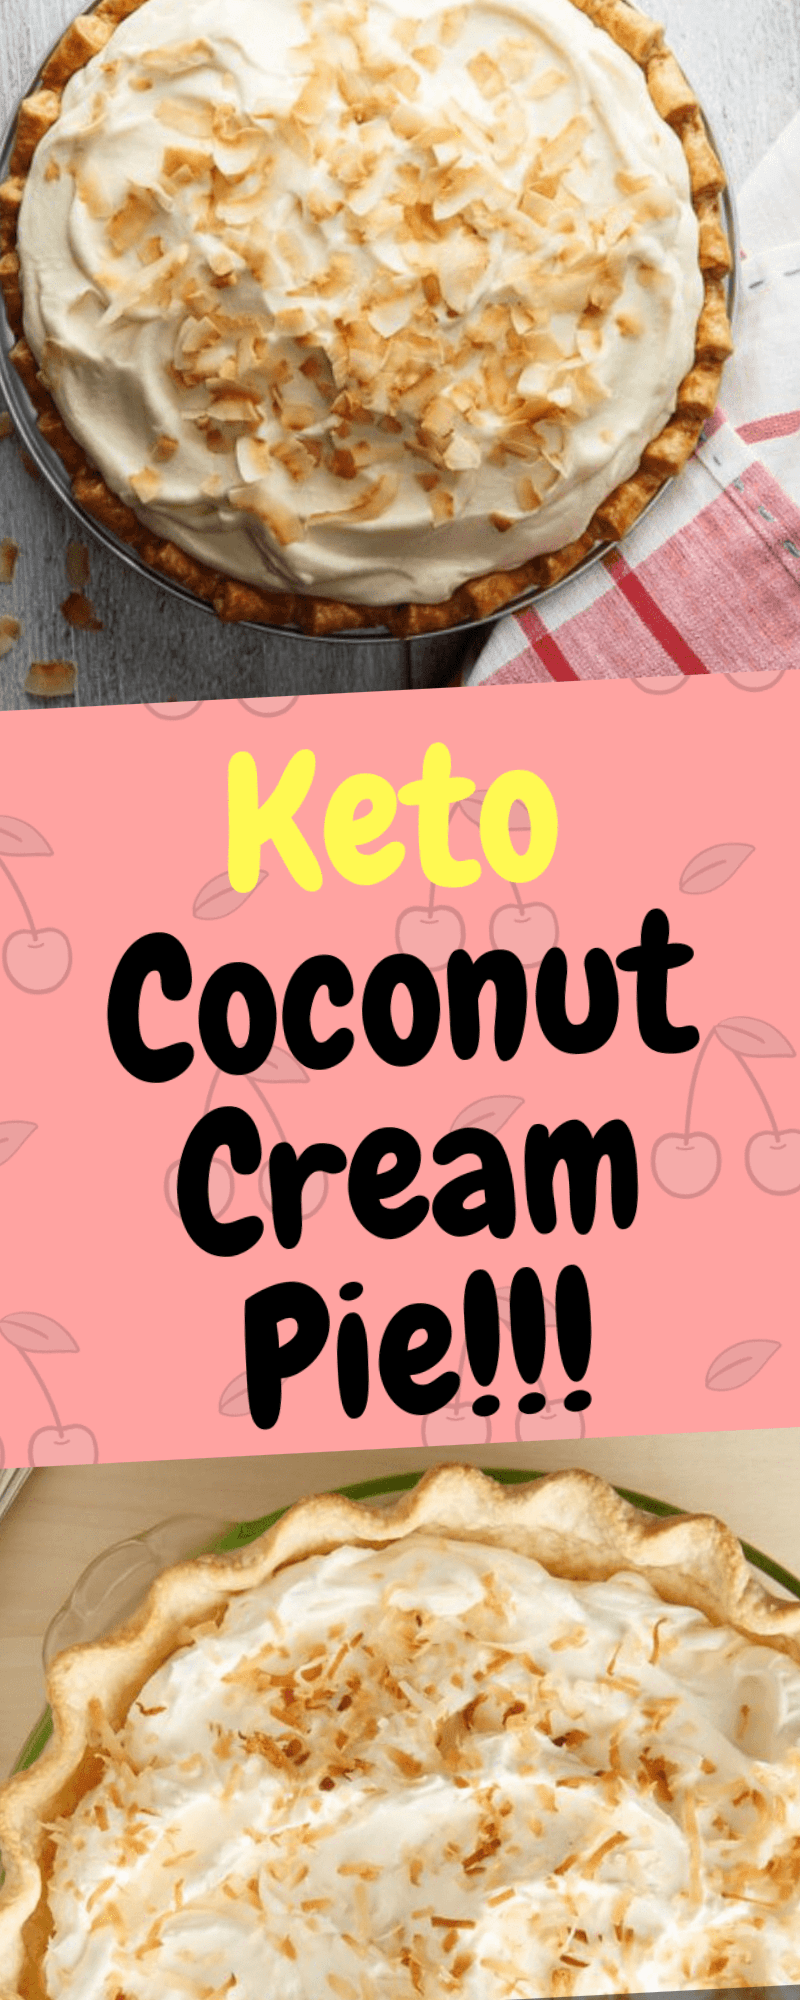 The highly anticipated and most awaited recipe is finally here! Matt created the ultimate keto dessert with this Low Carb Coconut Cream Pie. If you plan on making it make sure you share it with others or you will end up eating the entire pie in one night – it's that dangerous! There are a lot … #ketodesserts